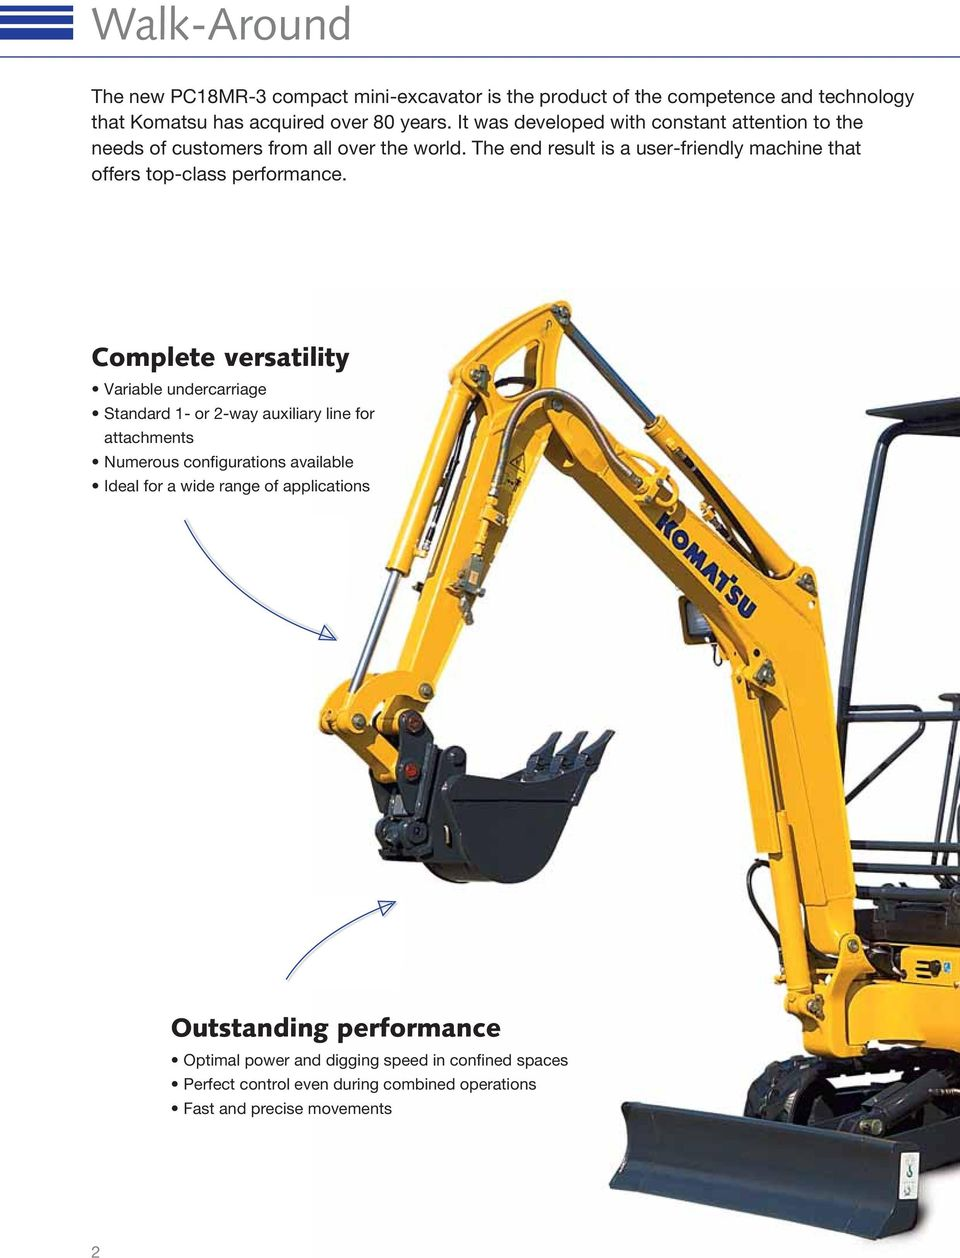 The end result is a user-friendly machine that offers top-class performance.